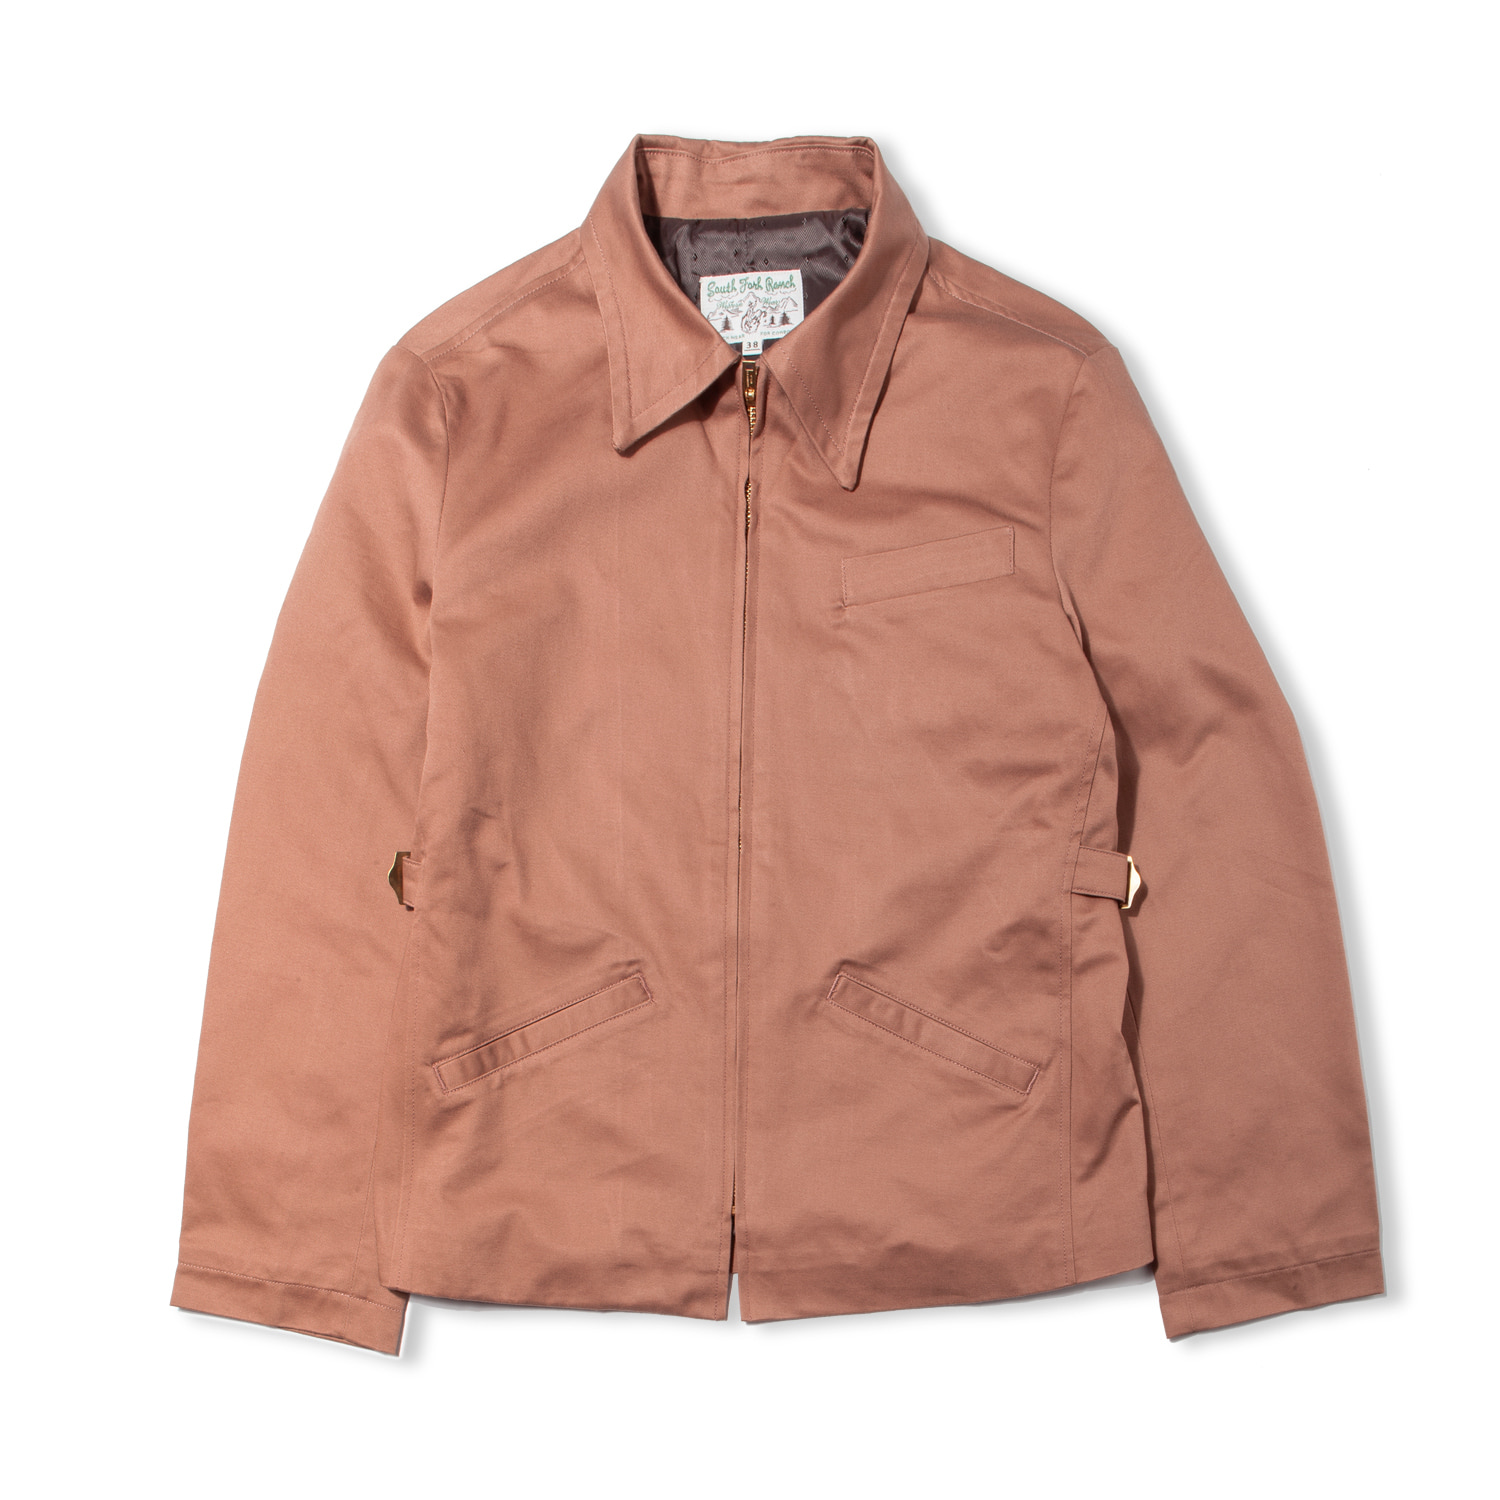 40s RANCH JACKET [ROSY BROWN]